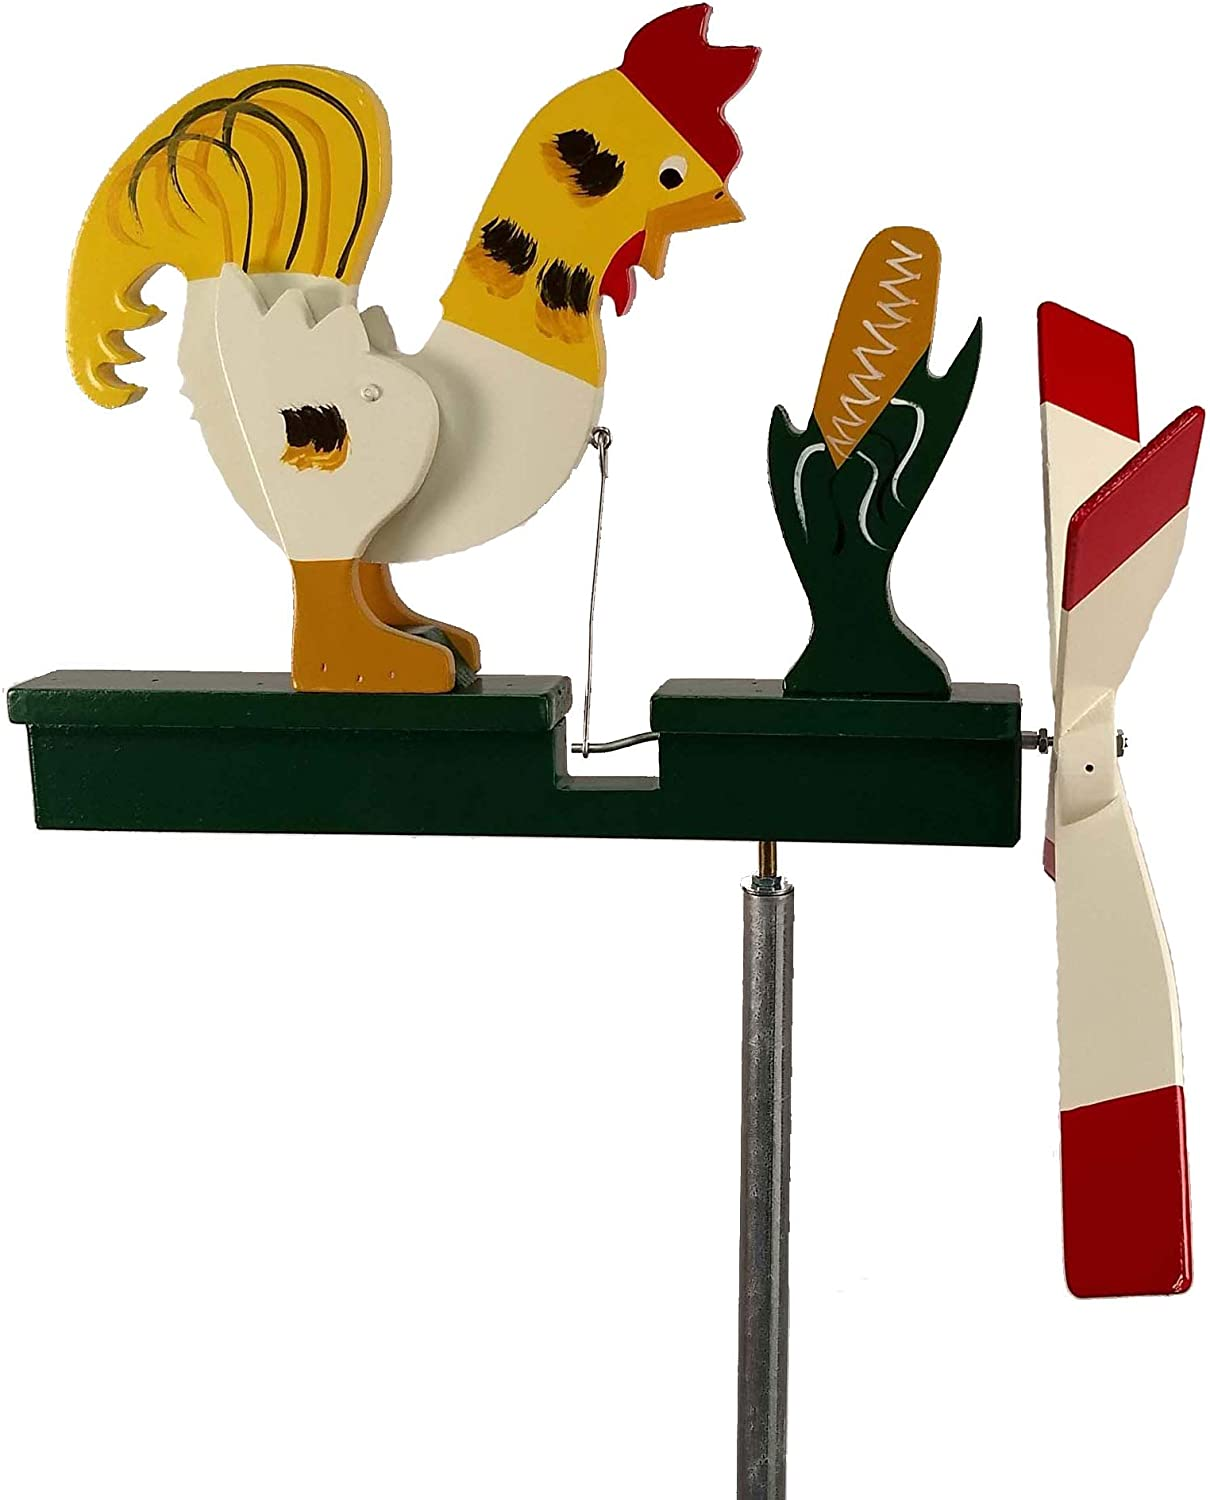 Natures Yard Rooster Whirligig Wind Spinner Handmade in USA